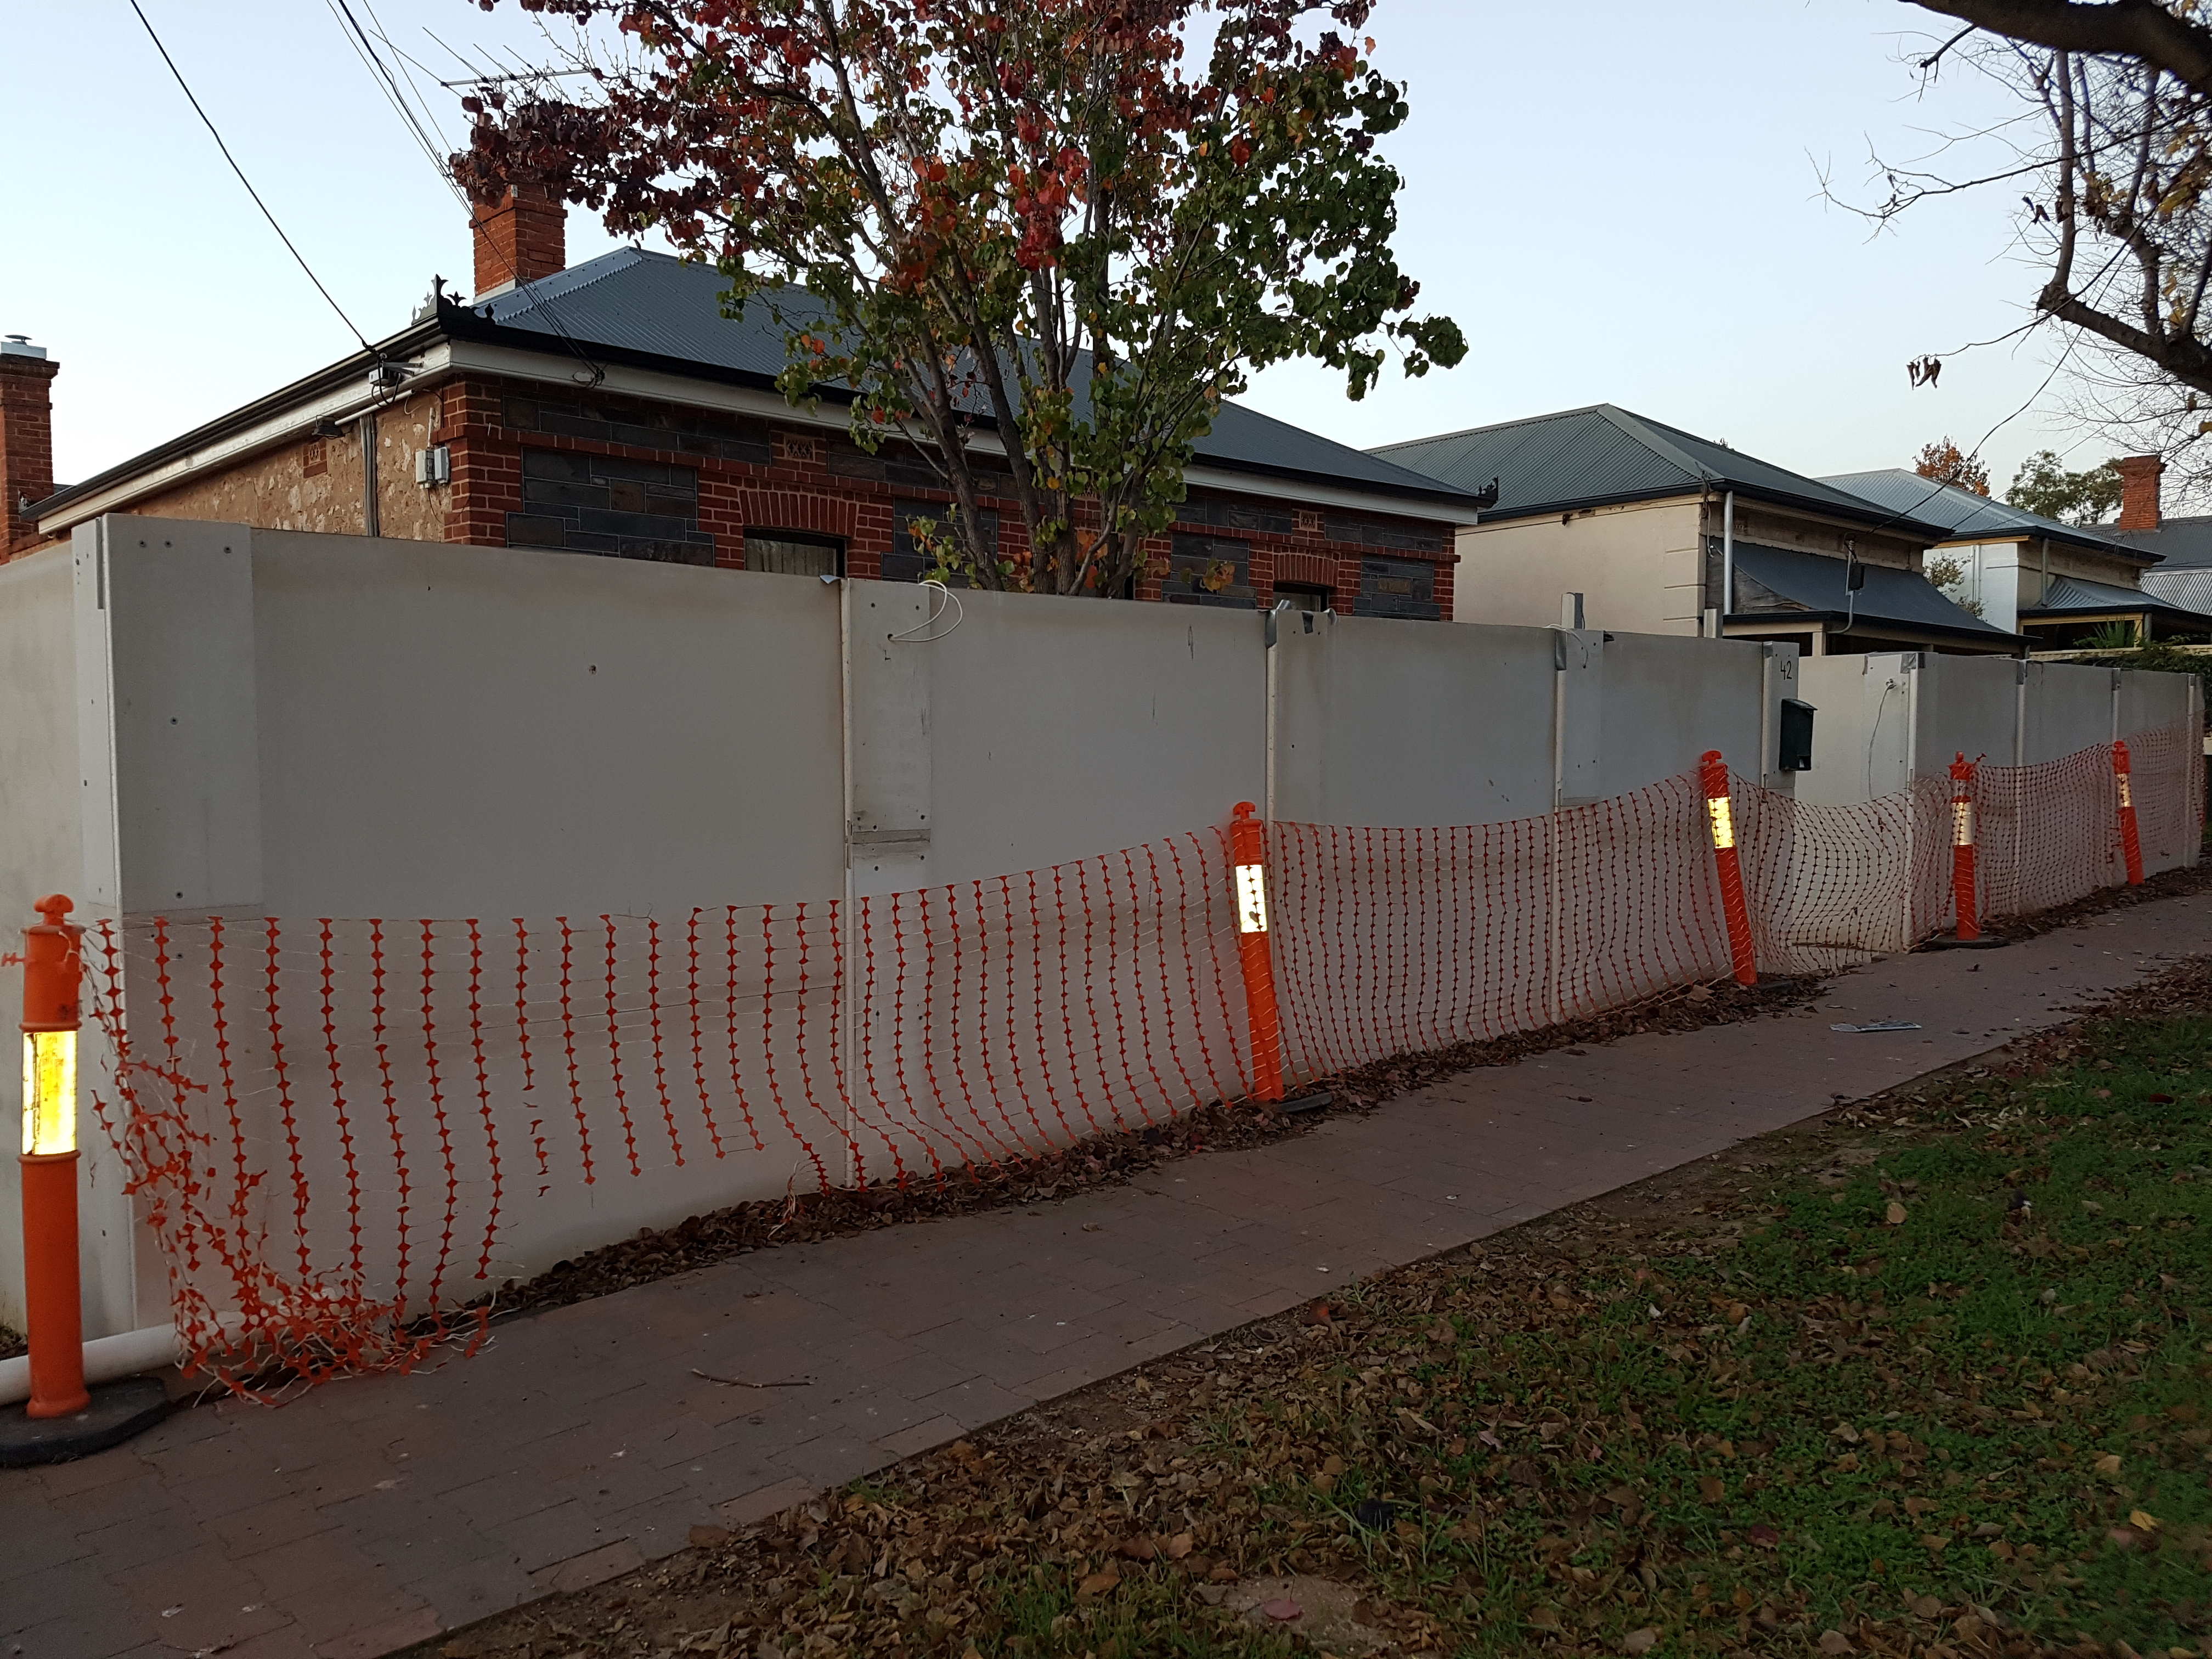 Columns can be added to provide depth to the fence.